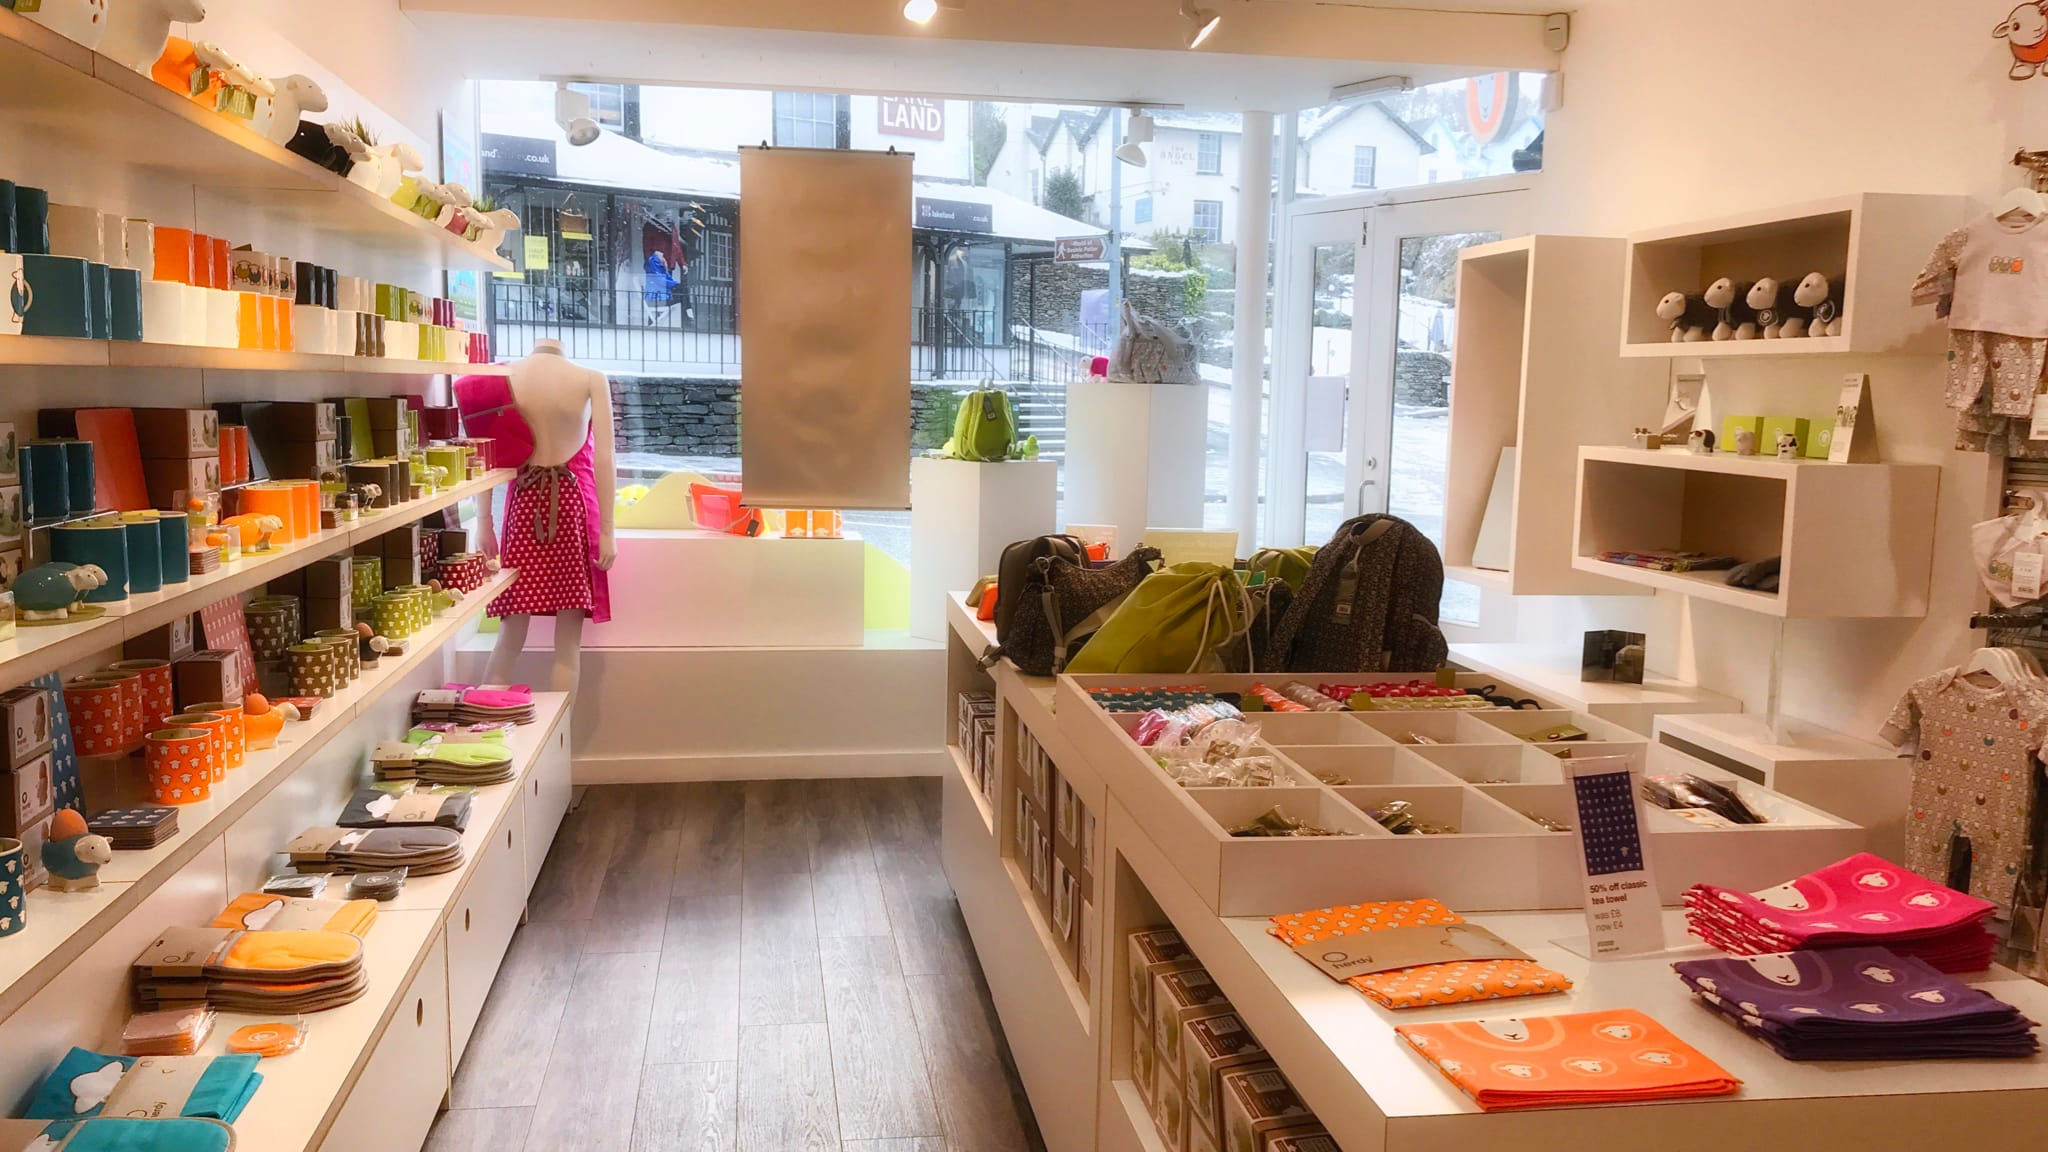 Inside the Herdy Bowness shop, surrounded by colourful Herdy products.